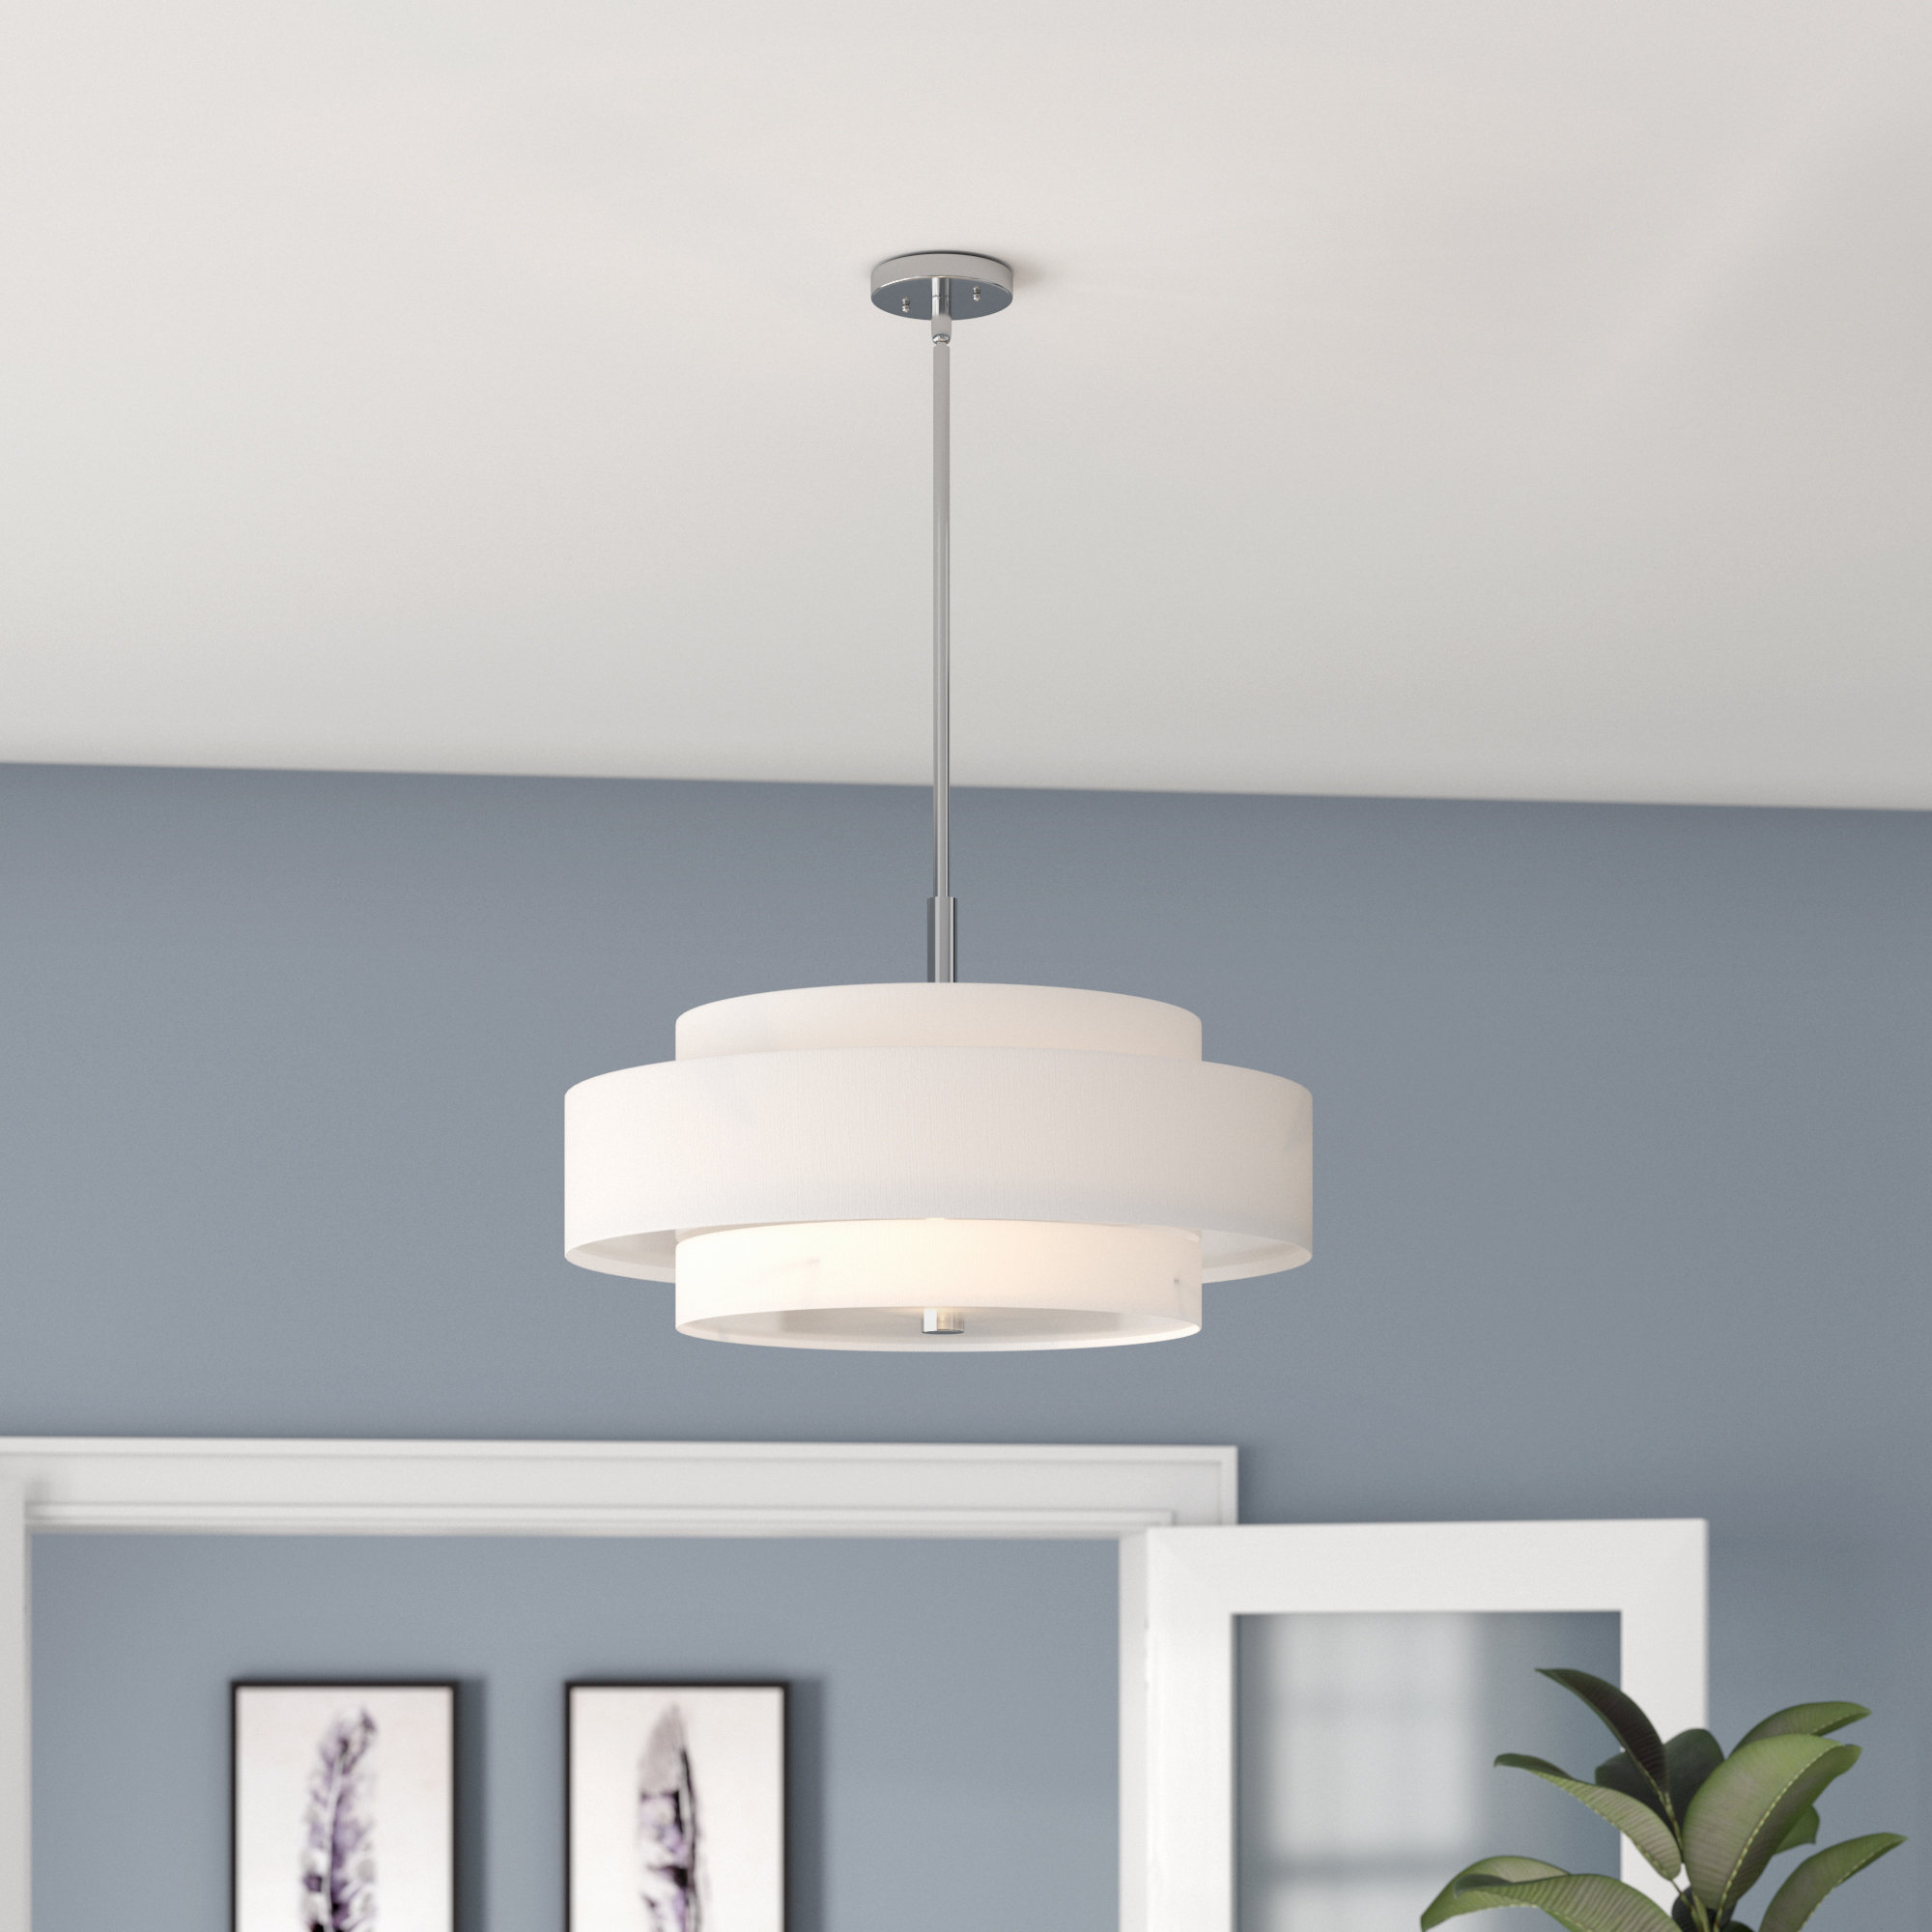 [%Drum Chandeliers Sale – Up To 65% Off Until September 30Th Throughout Preferred Dailey 4 Light Drum Chandeliers|Dailey 4 Light Drum Chandeliers Within Fashionable Drum Chandeliers Sale – Up To 65% Off Until September 30Th|Well Known Dailey 4 Light Drum Chandeliers In Drum Chandeliers Sale – Up To 65% Off Until September 30Th|Well Known Drum Chandeliers Sale – Up To 65% Off Until September 30Th With Regard To Dailey 4 Light Drum Chandeliers%] (View 12 of 20)